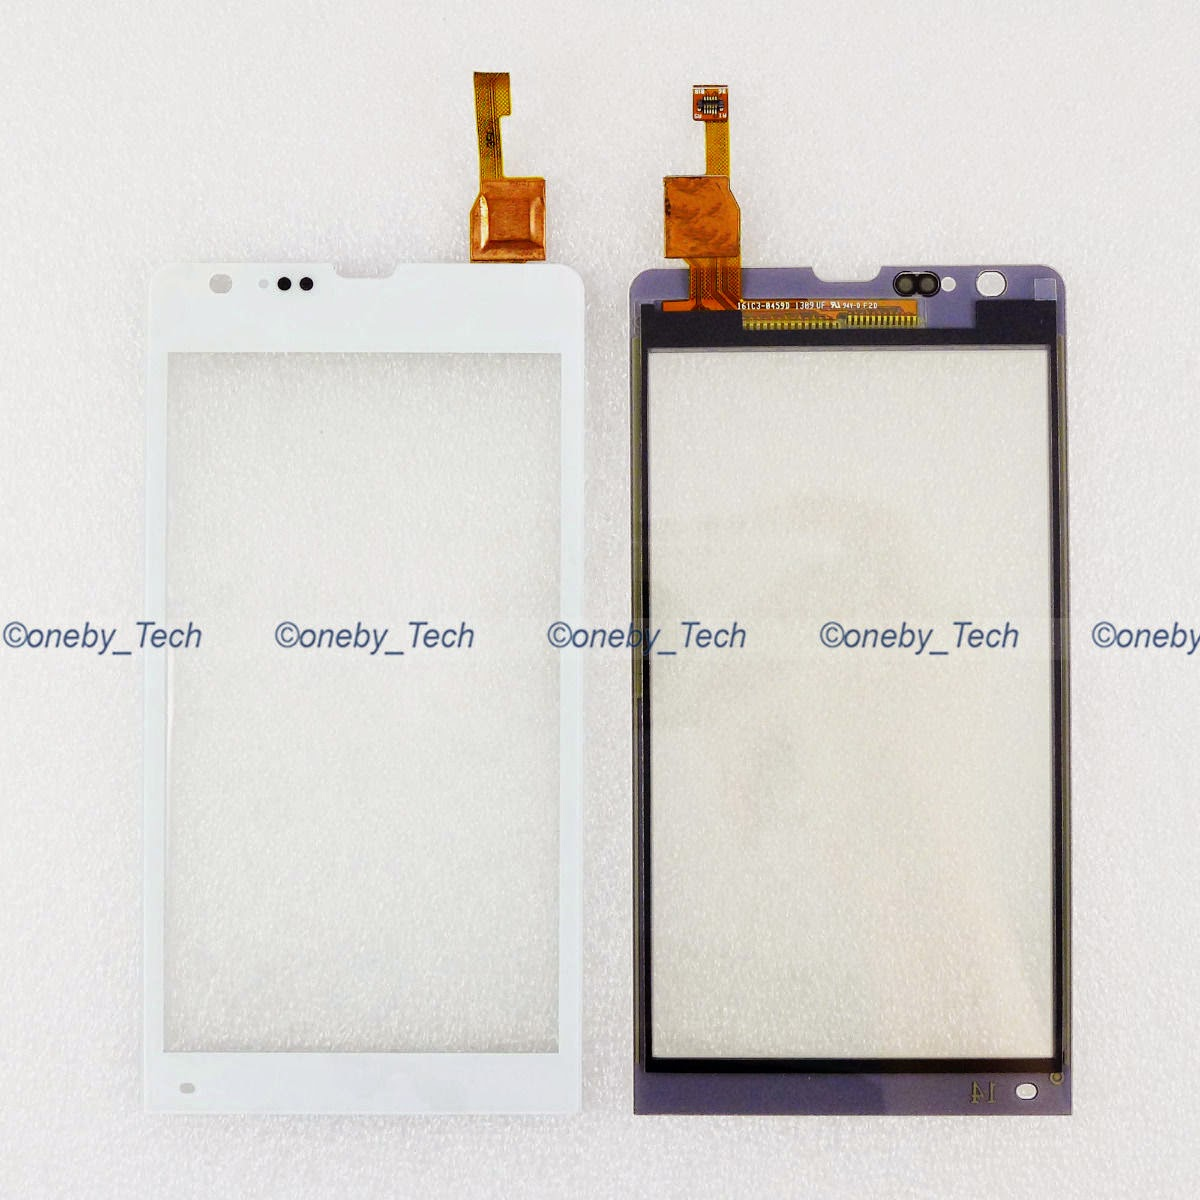 New White Touch Screen Digitizer Glass For Sony Xperia SP C5302 C5303 C5306 M35h